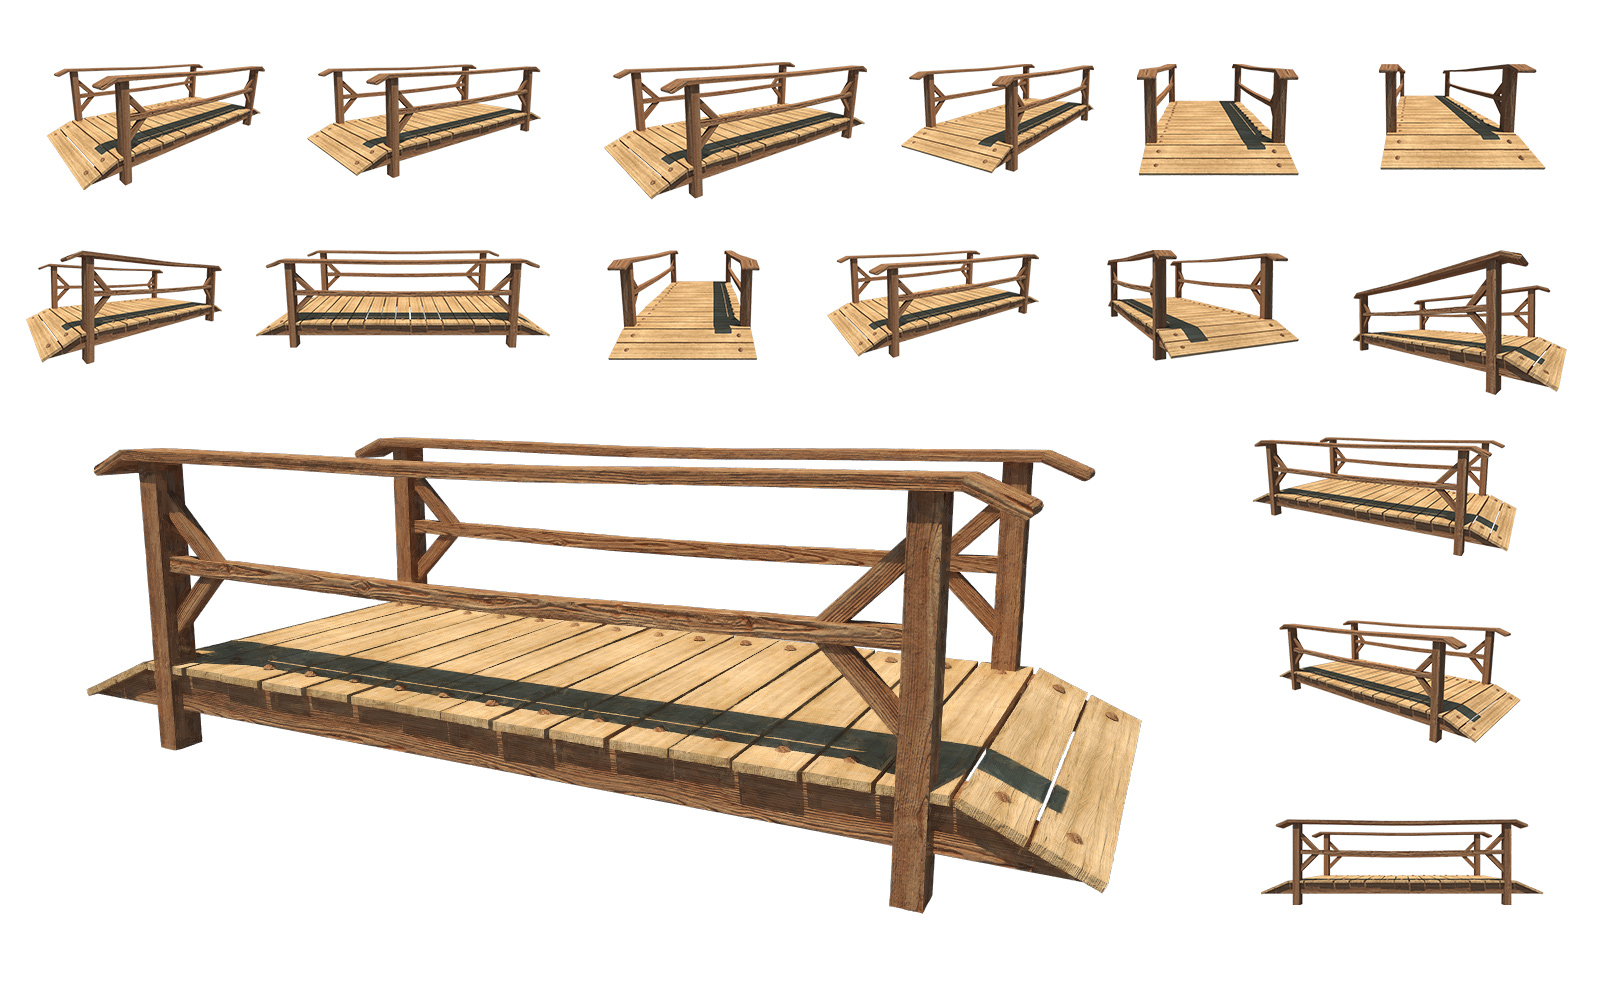 ... Small Wooden Bridge, PNG Pack by fumar-porros